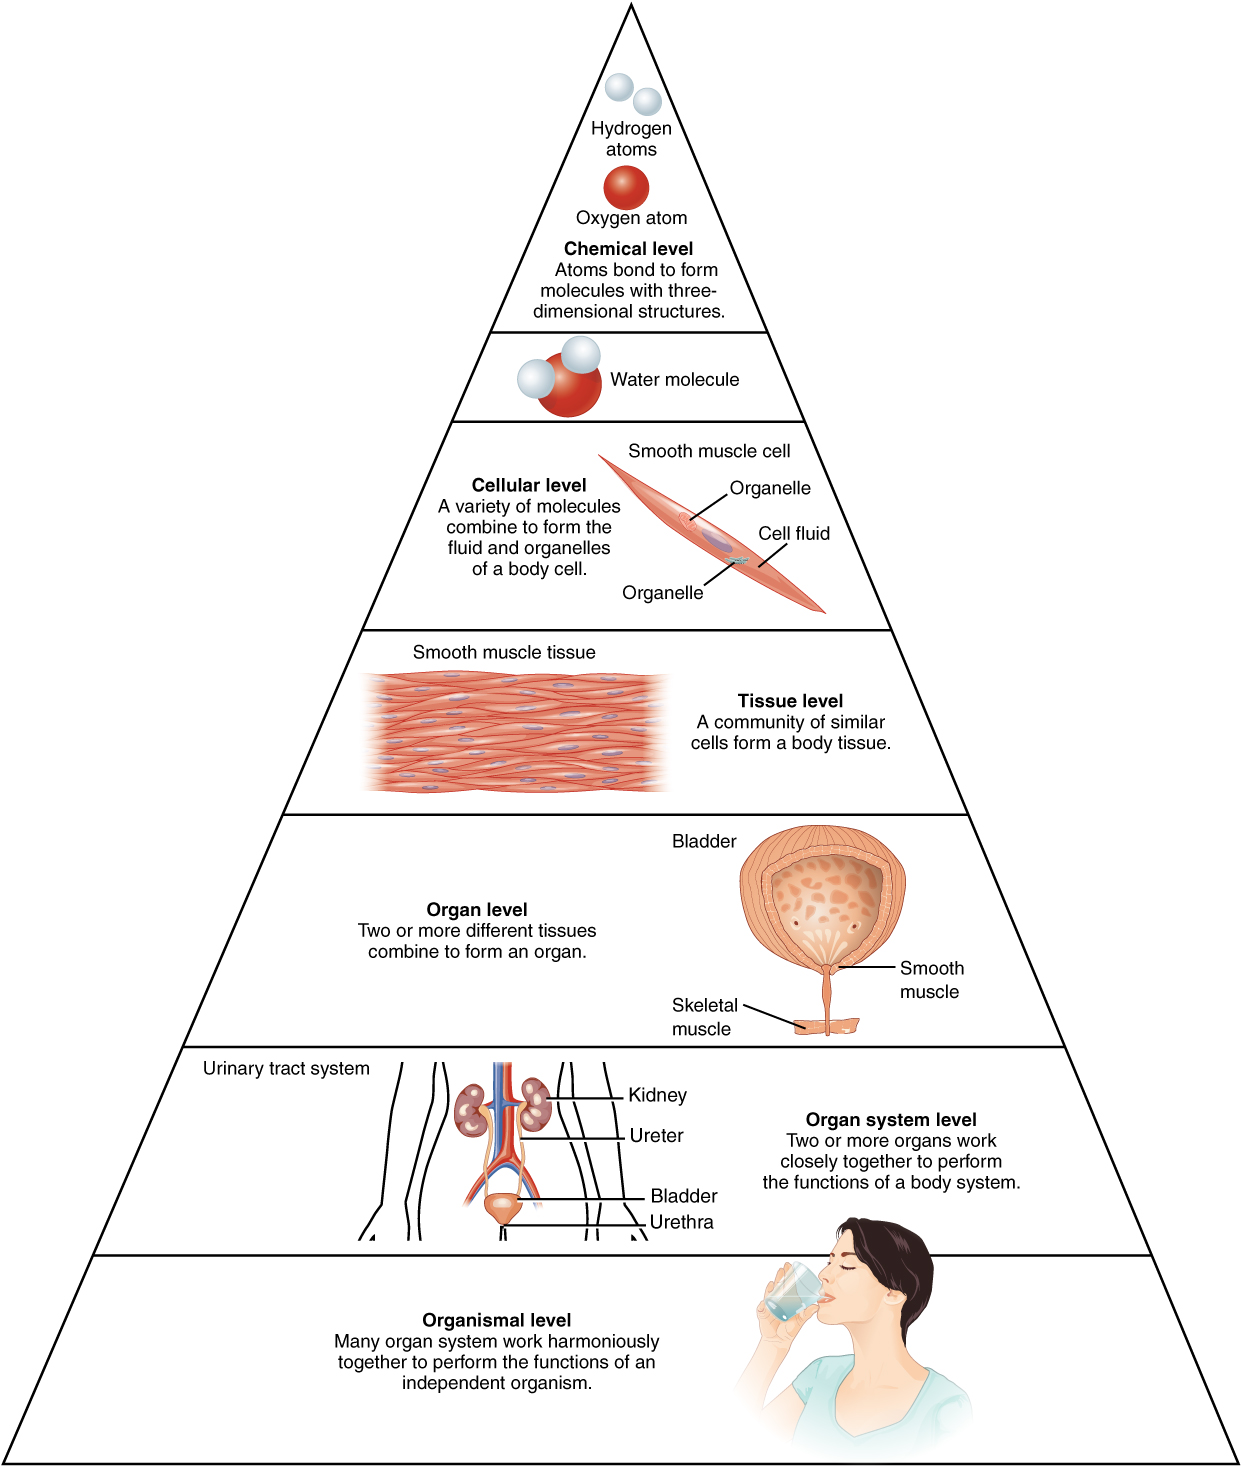 Structural Organization of the Human Body | Anatomy and Physiology I